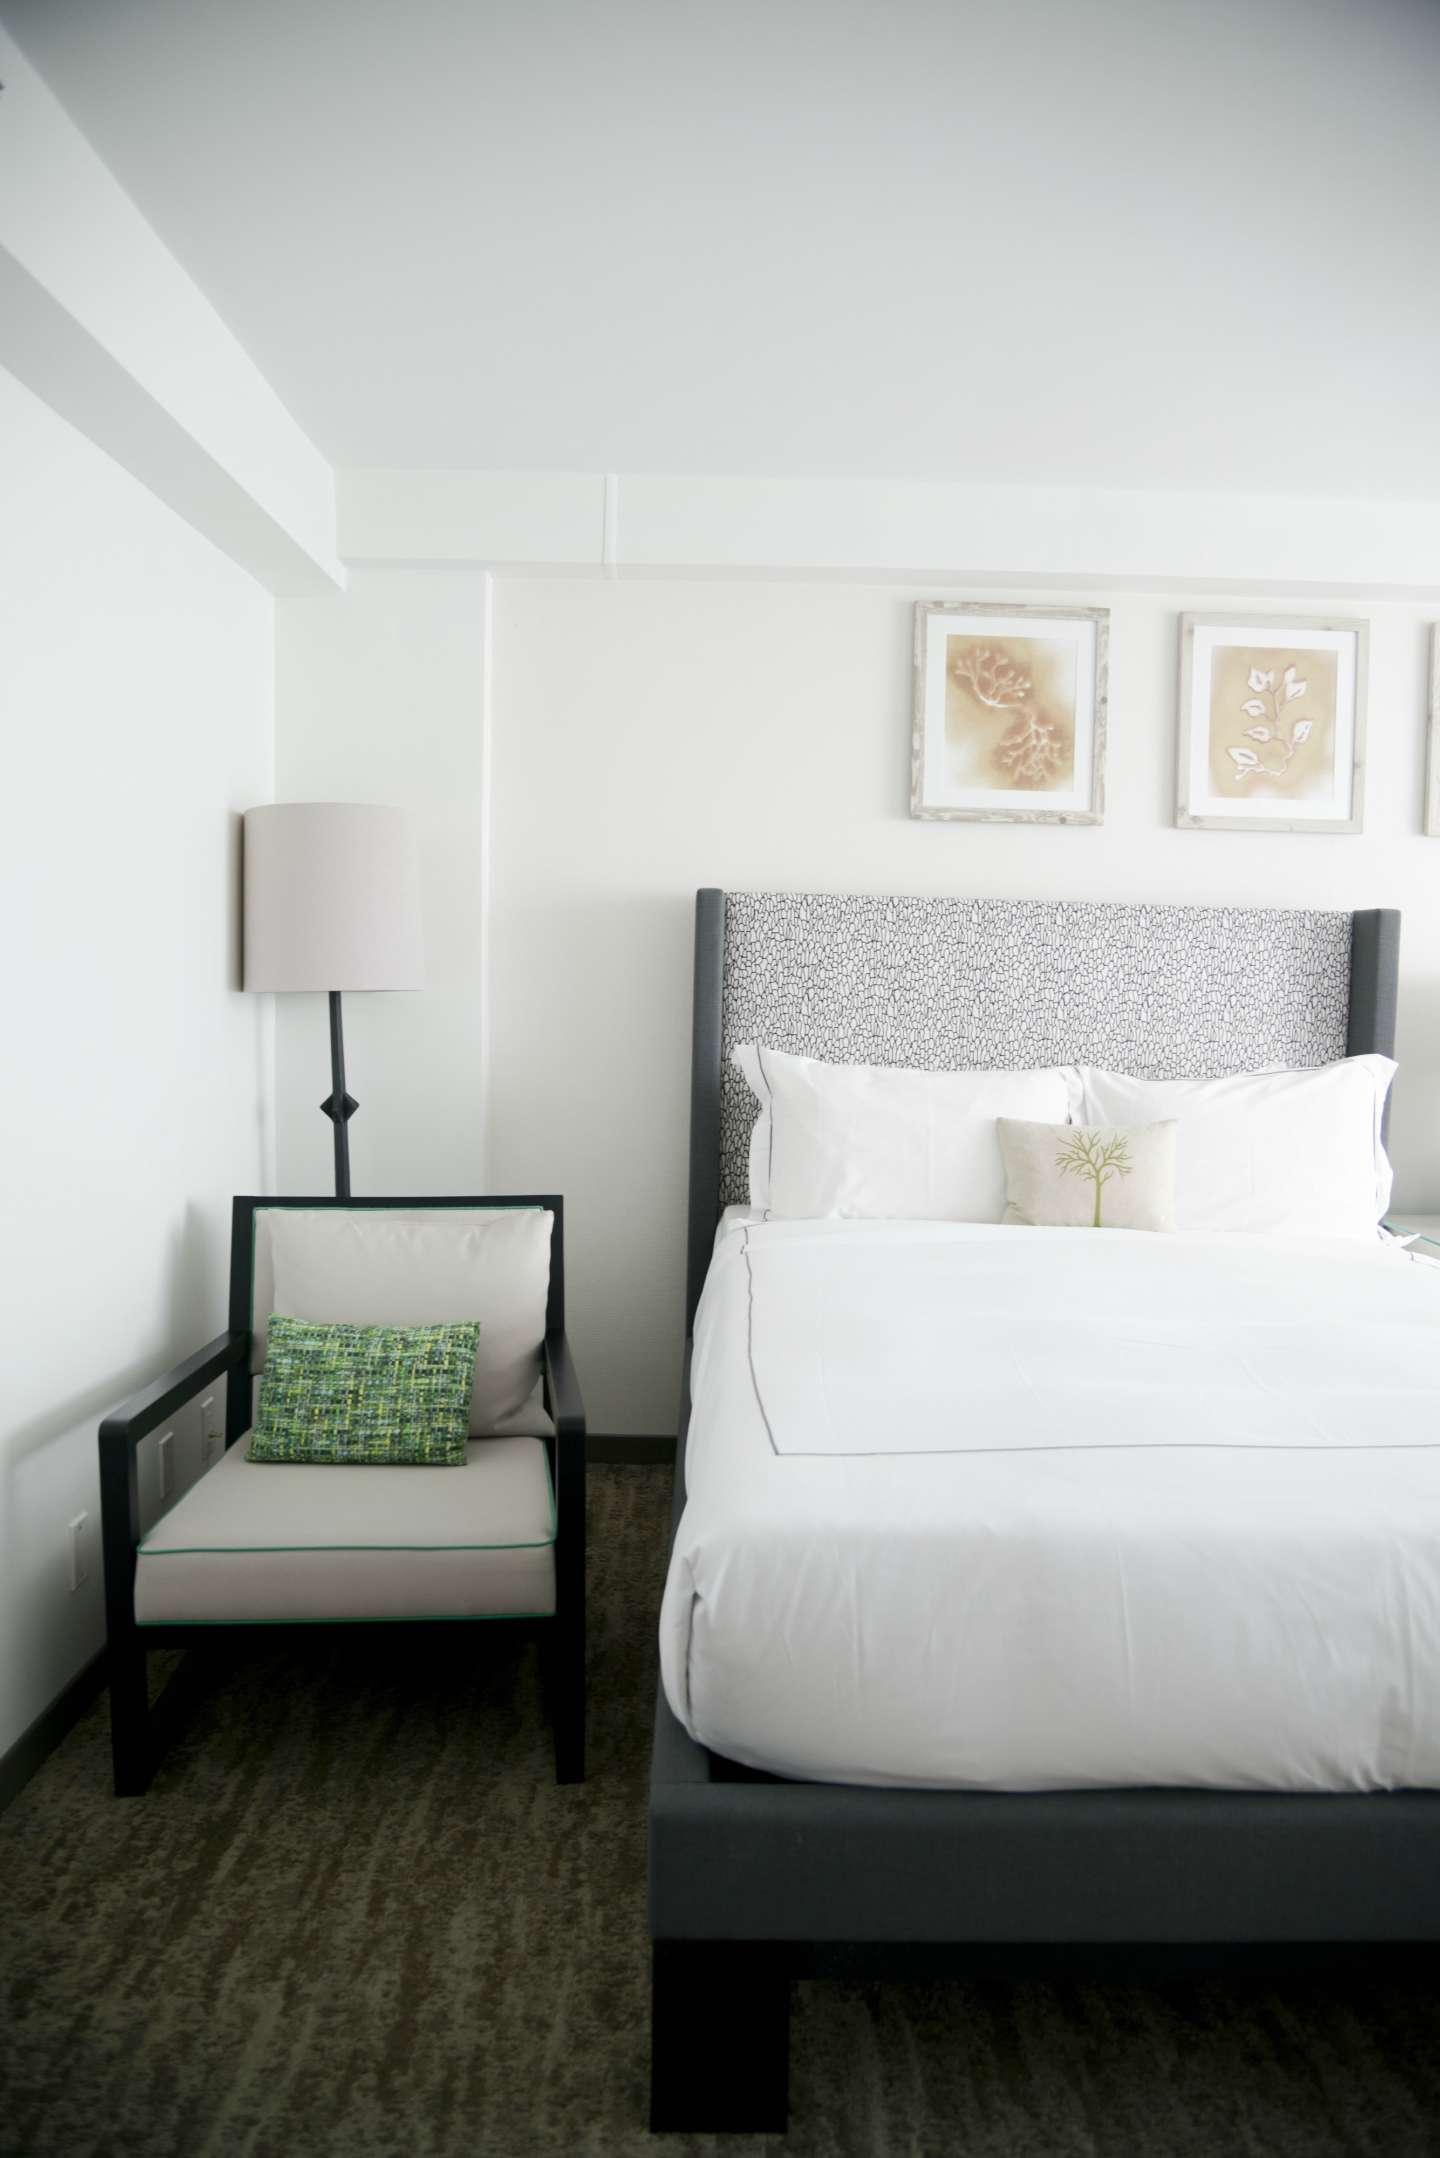 Kimpton Glover Park Hotel & Casolare in D.C. - I'm Fixin' To - @mbg0112